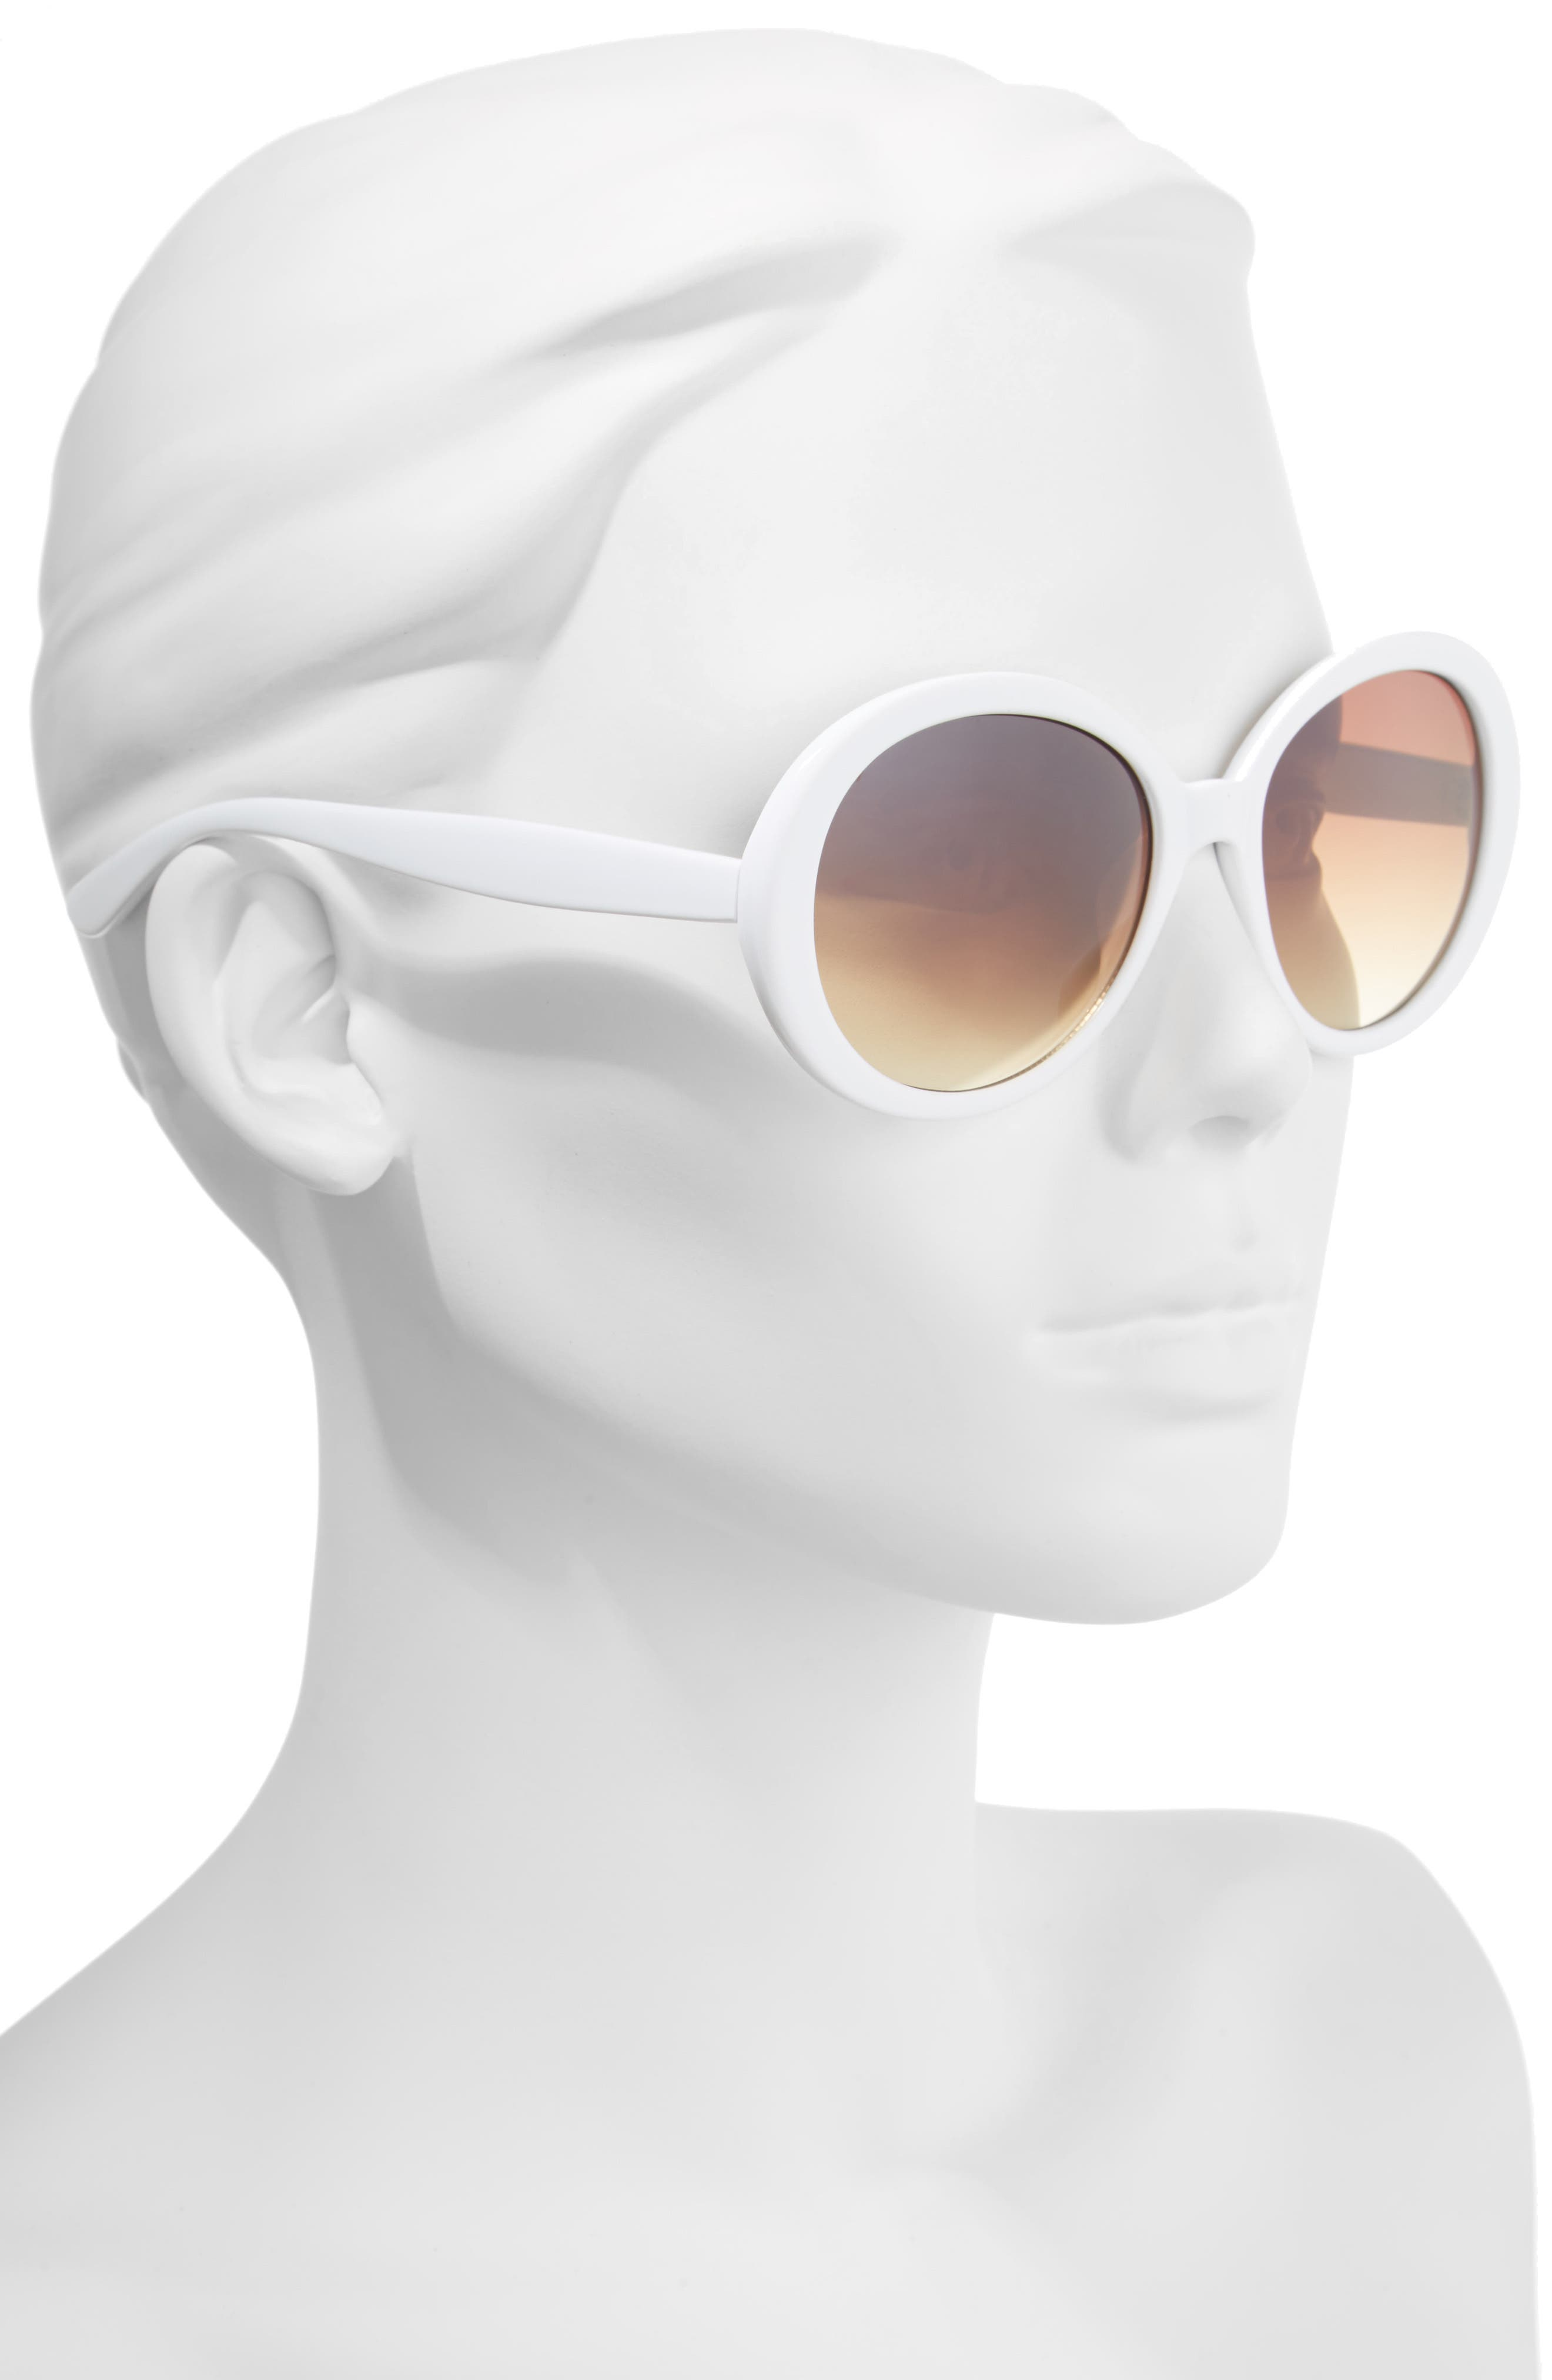 55mm Oval Sunglasses,                             Alternate thumbnail 2, color,                             Cream/ Brown